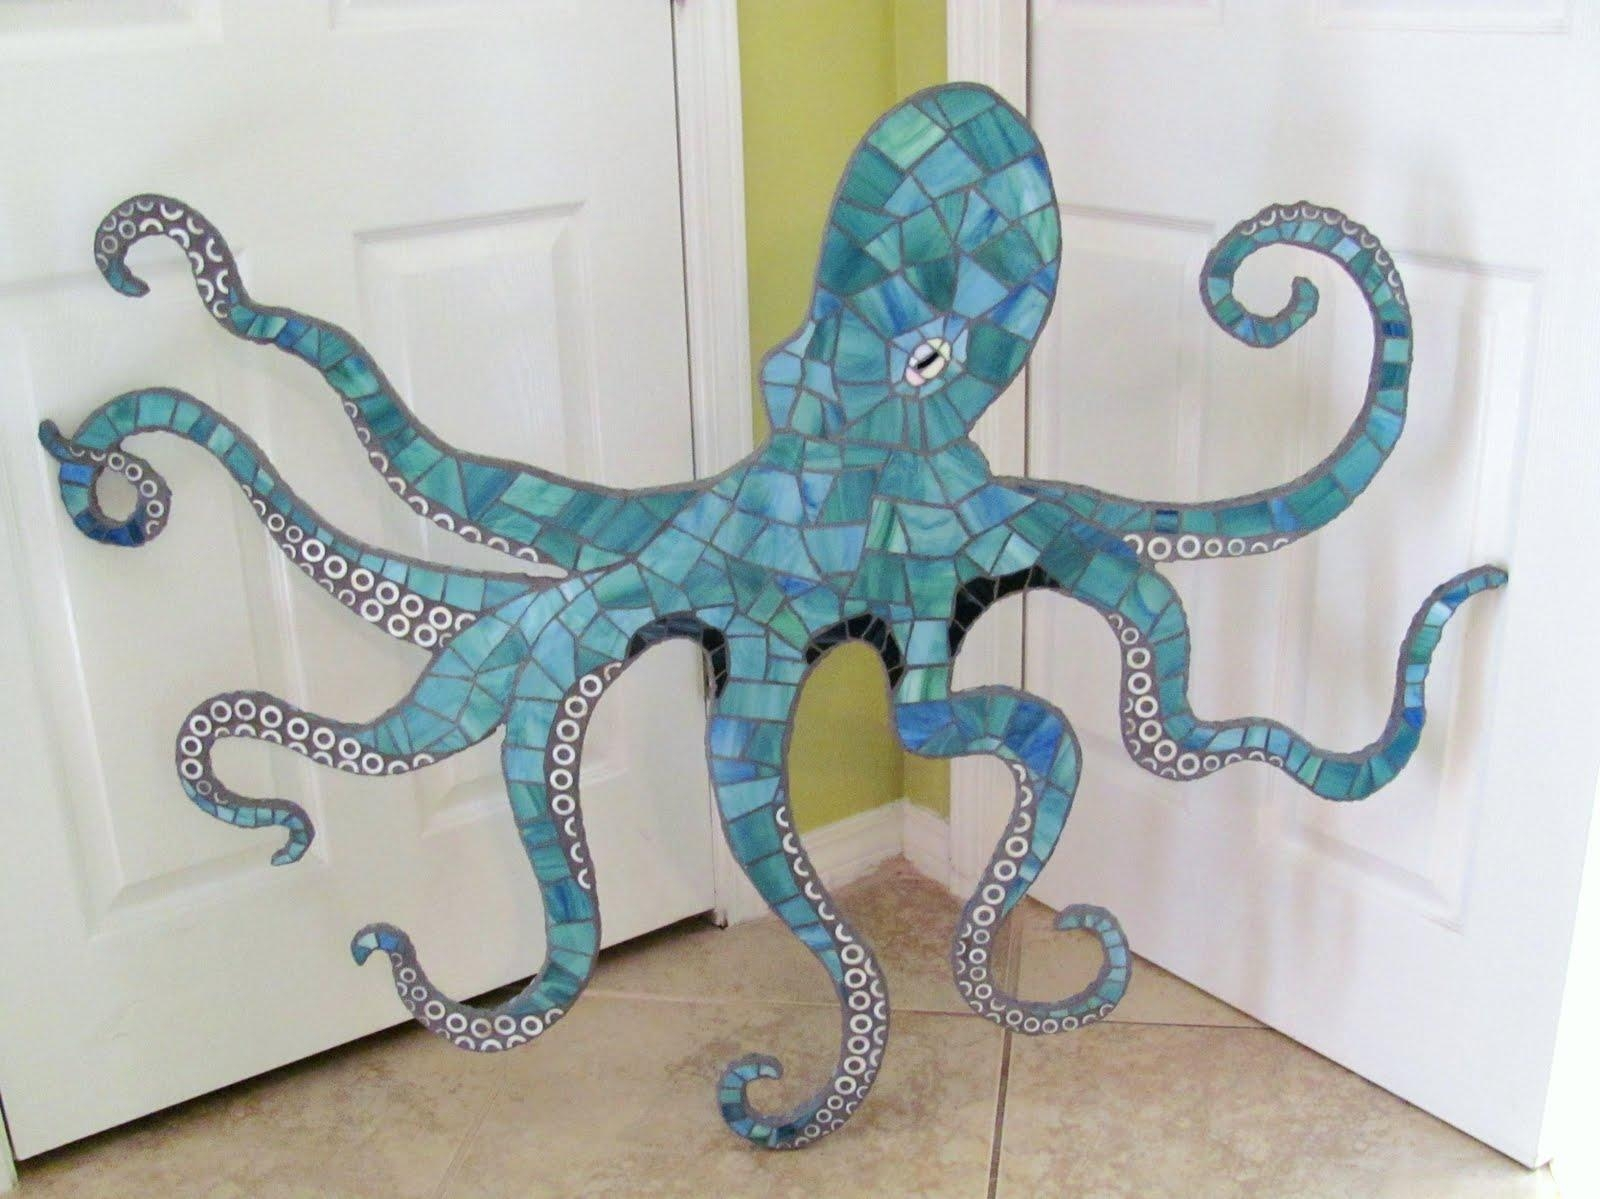 Octopus Mosaic Wall Art, Large 4 Ft Stained Glass Mosaic Octopus In Octopus Tentacle Wall Art (Image 11 of 20)